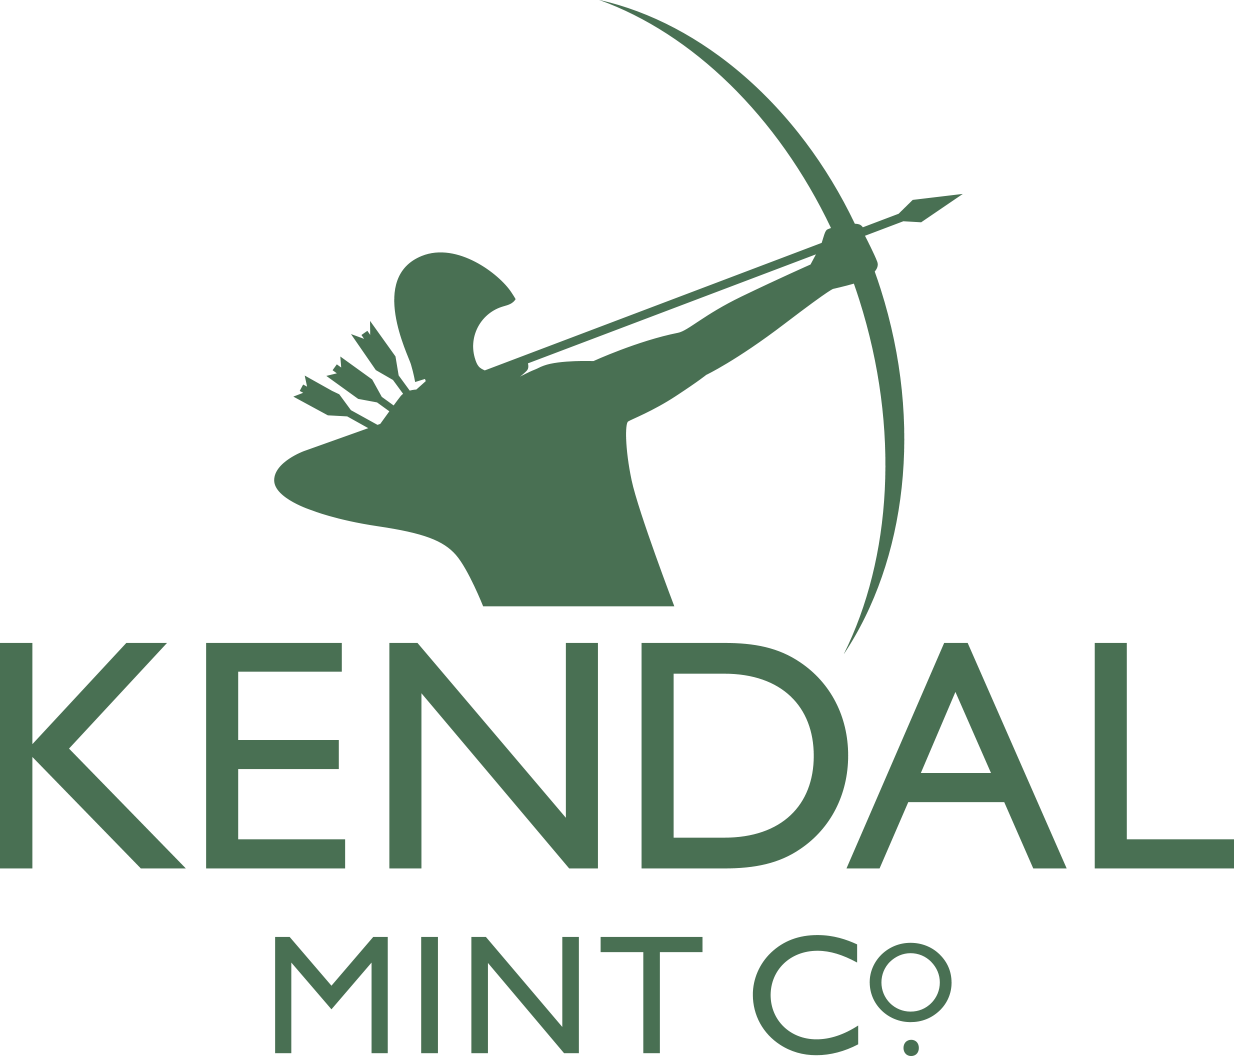 Kendal Mint Co® | UK's No.1 Choice for Energy Bars, Kendal Mint Cake, Energy Gels, Hydration, Protein Recovery & Lifestyle products for Athletes, Runners, Cyclists and Outdoor Adventurers.